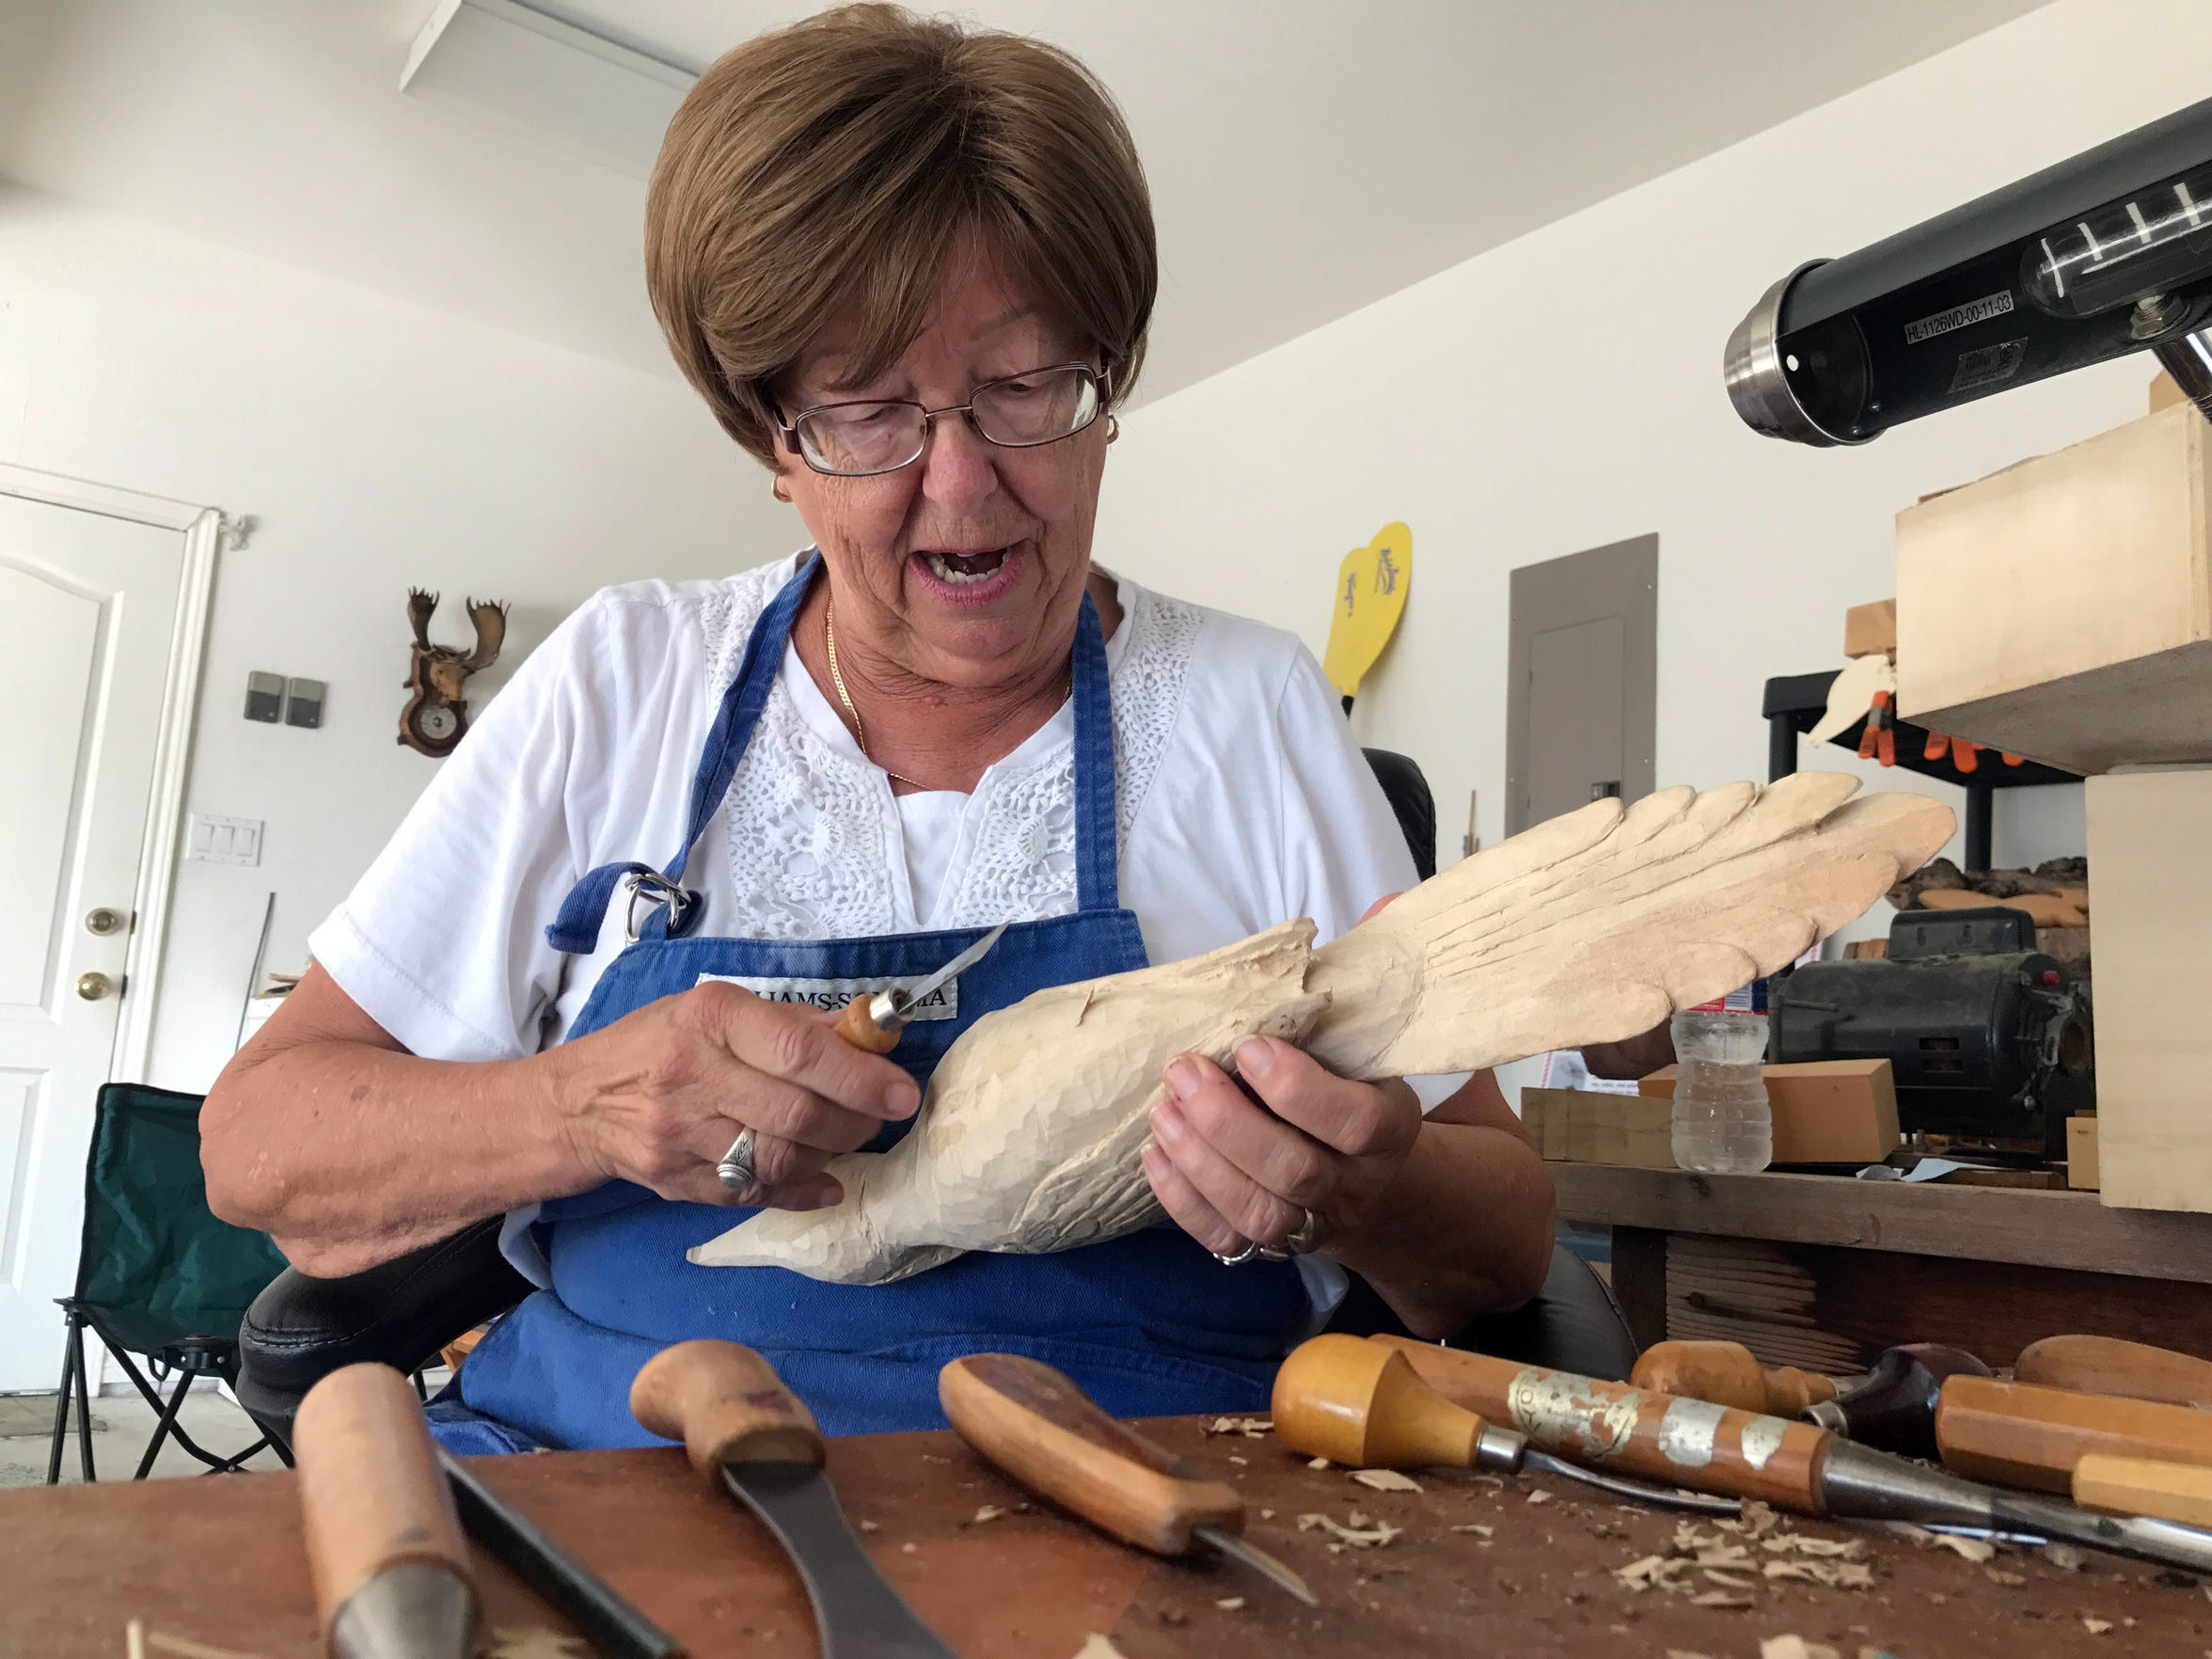 Posluszny works in her garage at least a couple of hours daily.